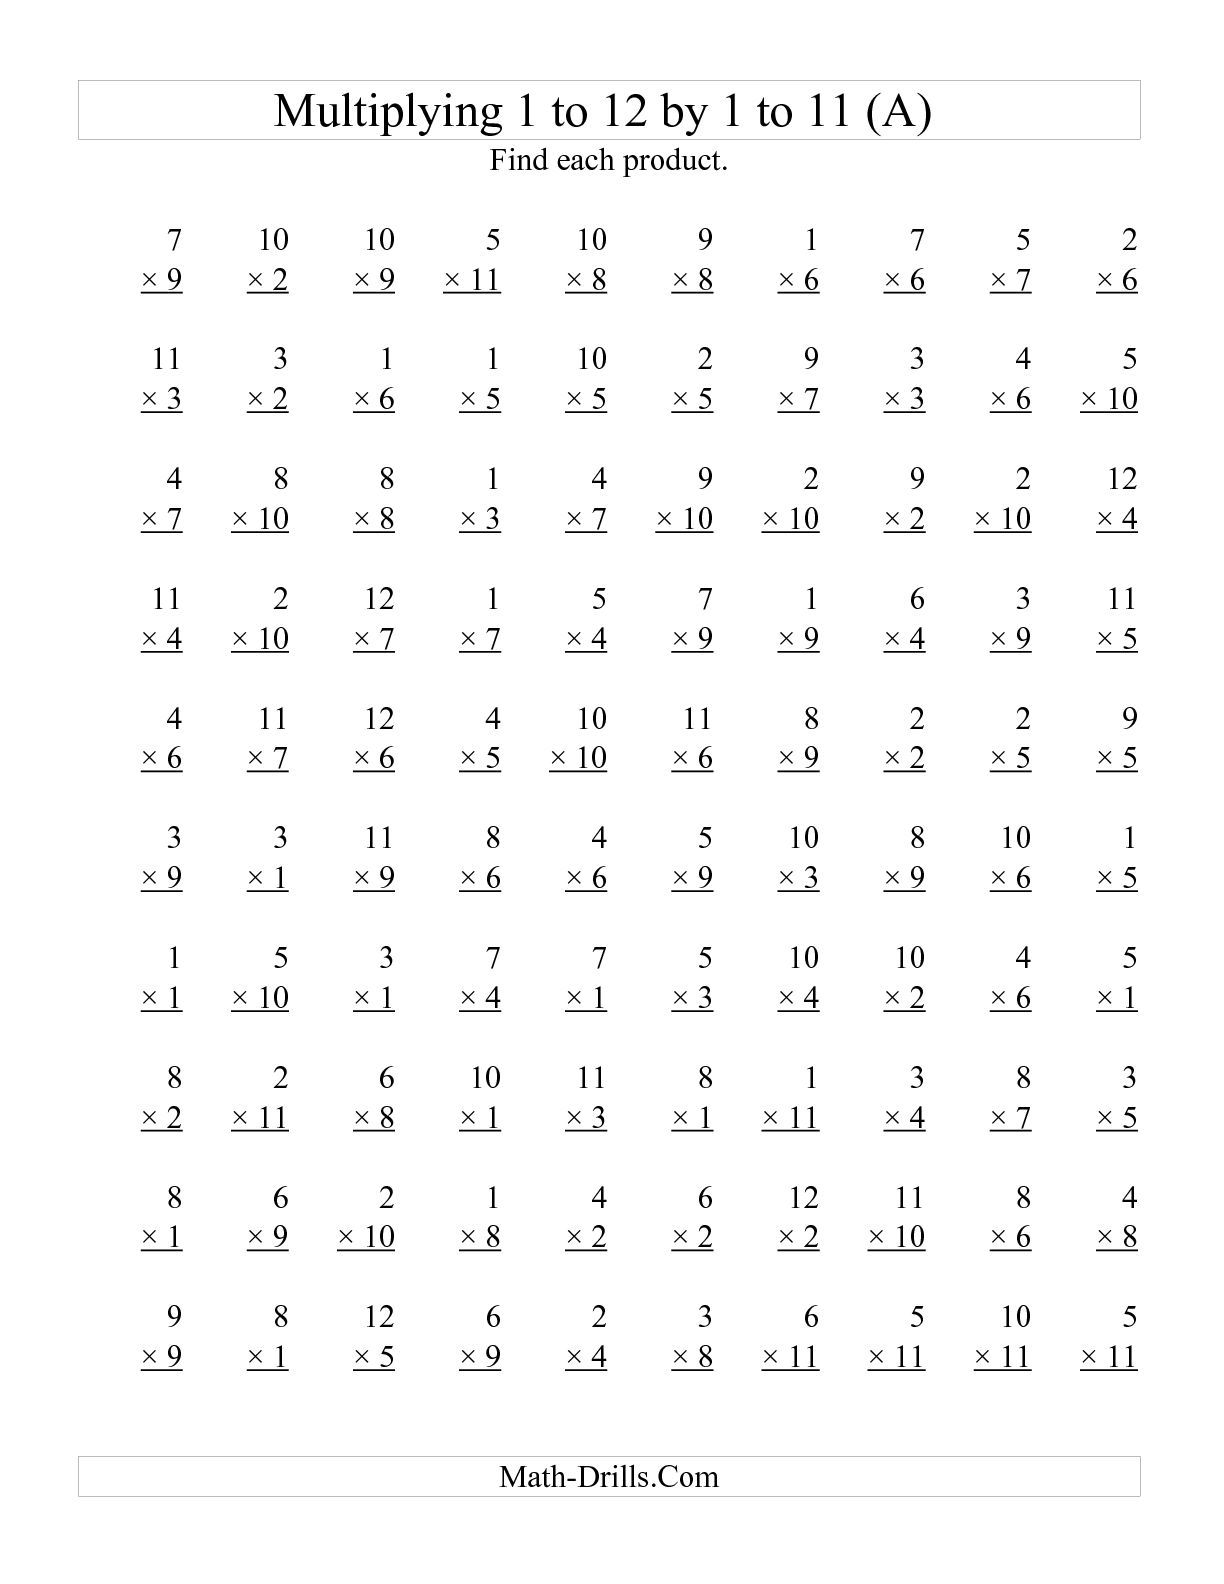 worksheet Multiplying Worksheet the 100 vertical questions multiplying 1 to 12 by 11 a math worksheet